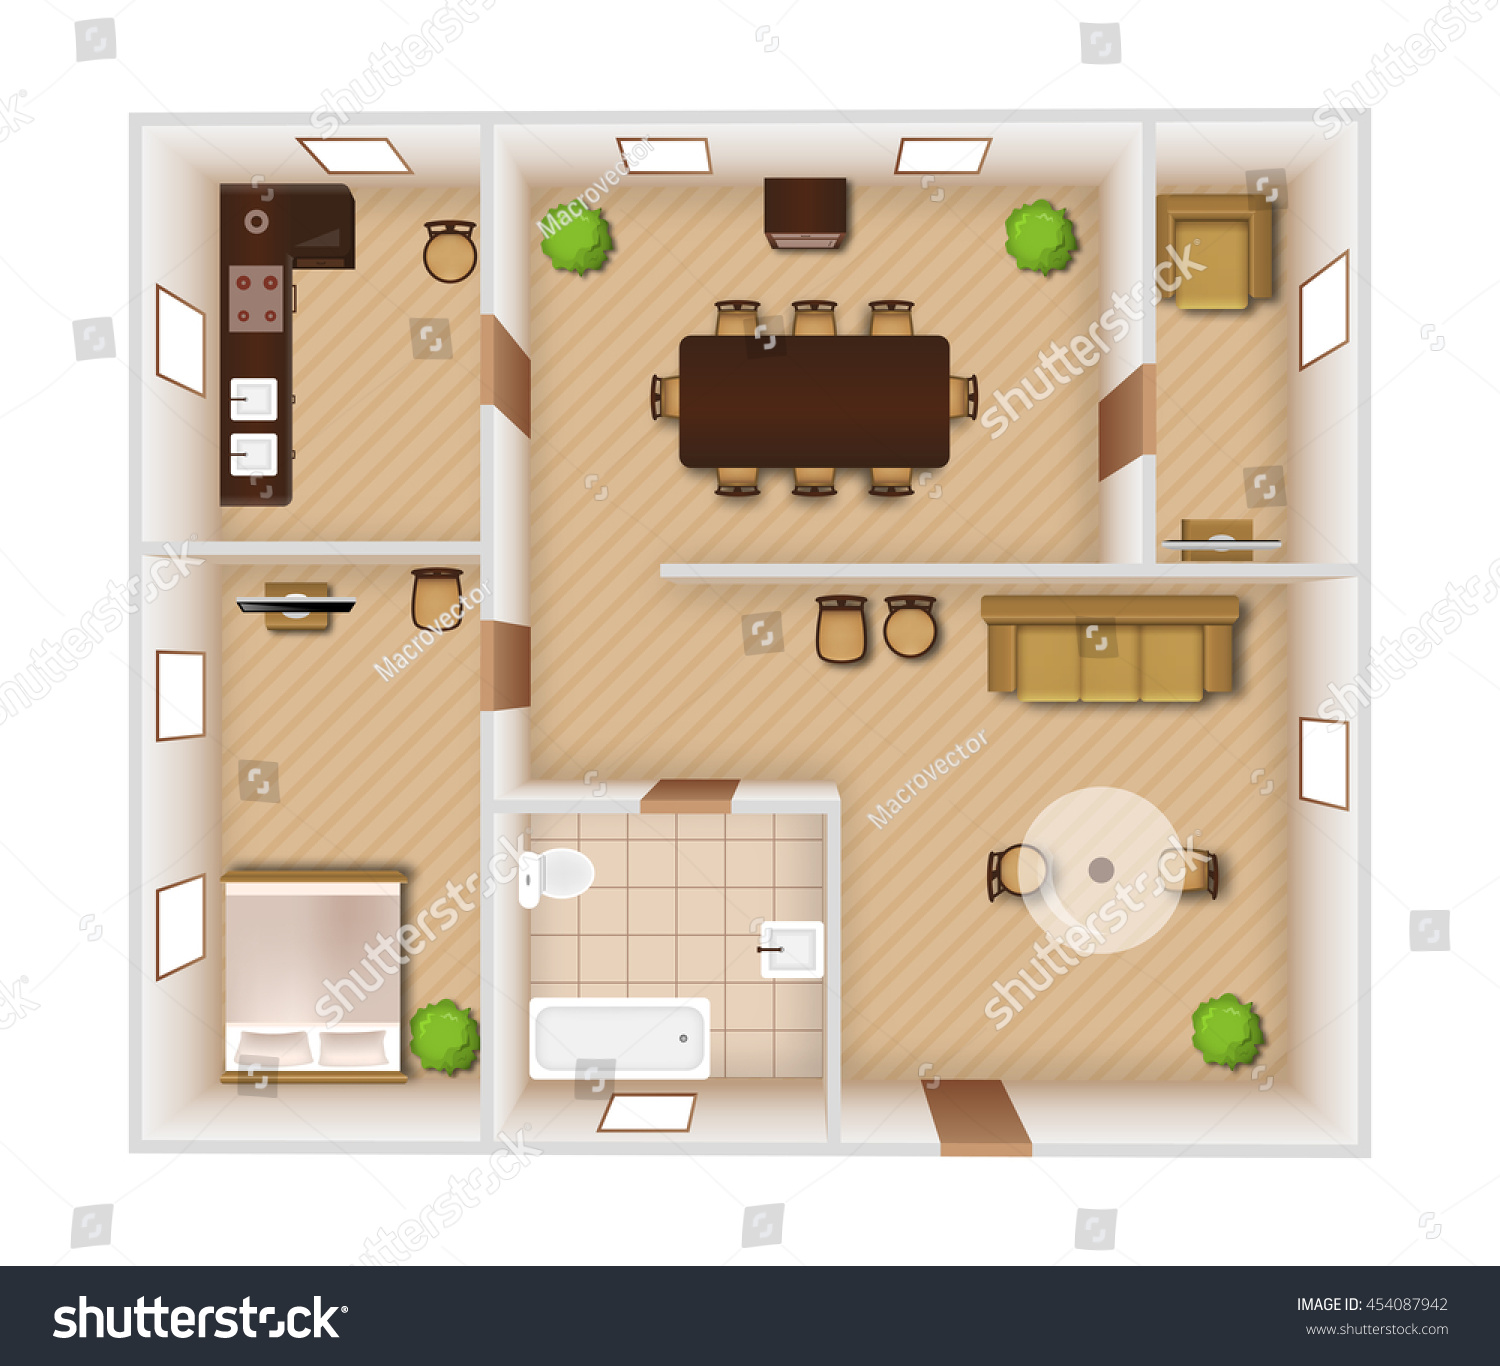 flat rooms interior furniture equipment top stock vector  flat rooms interior furniture and equipment top view vector illustration